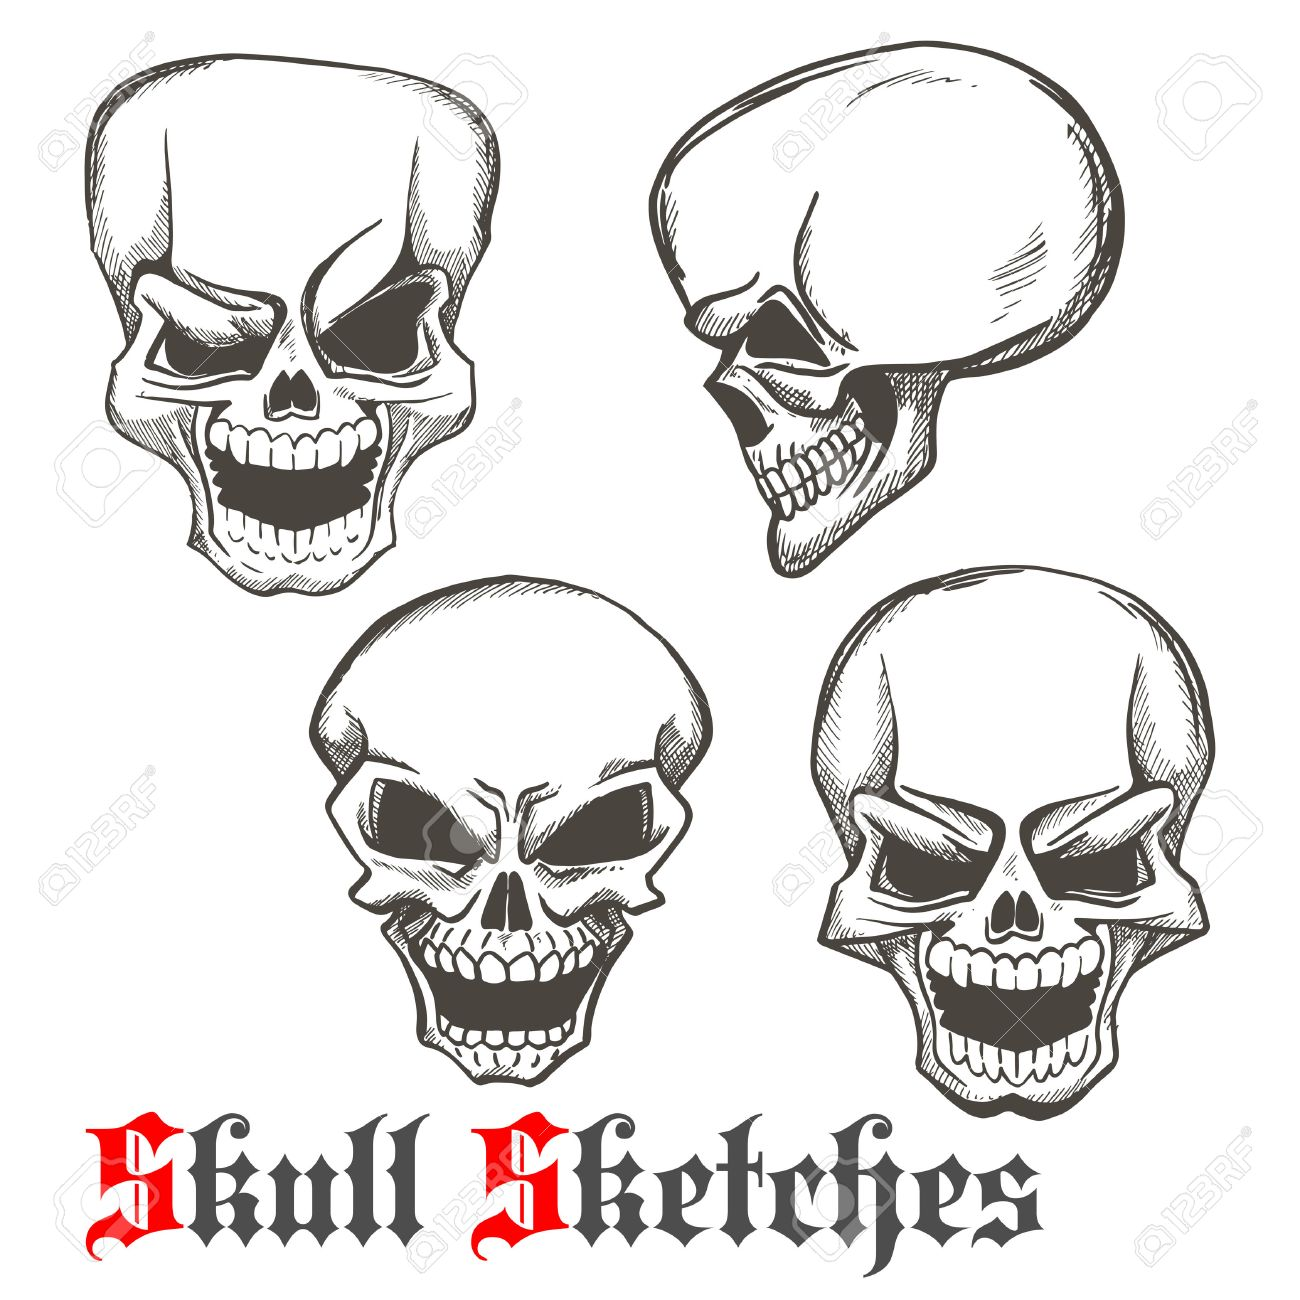 Smiling and winking skulls sketches of human skeleton heads with evil laughing grins. Use as tattoo or Halloween mascot design - 61615192